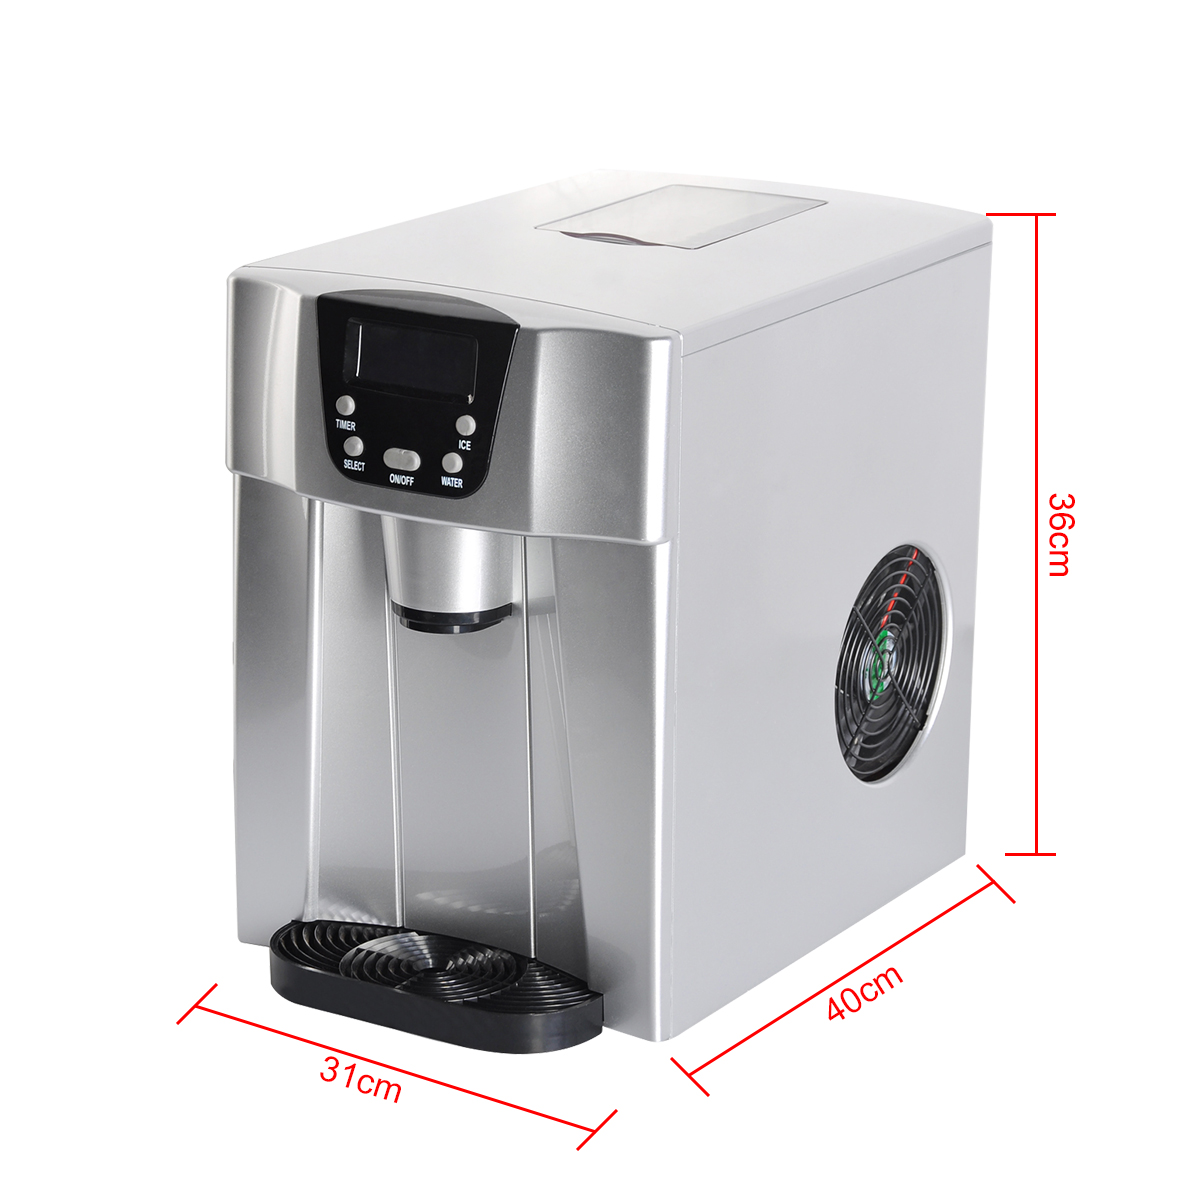 Cube Ice Maker 2l Home Portable Cube Ice Maker Machine Lcd Control Panel Easy